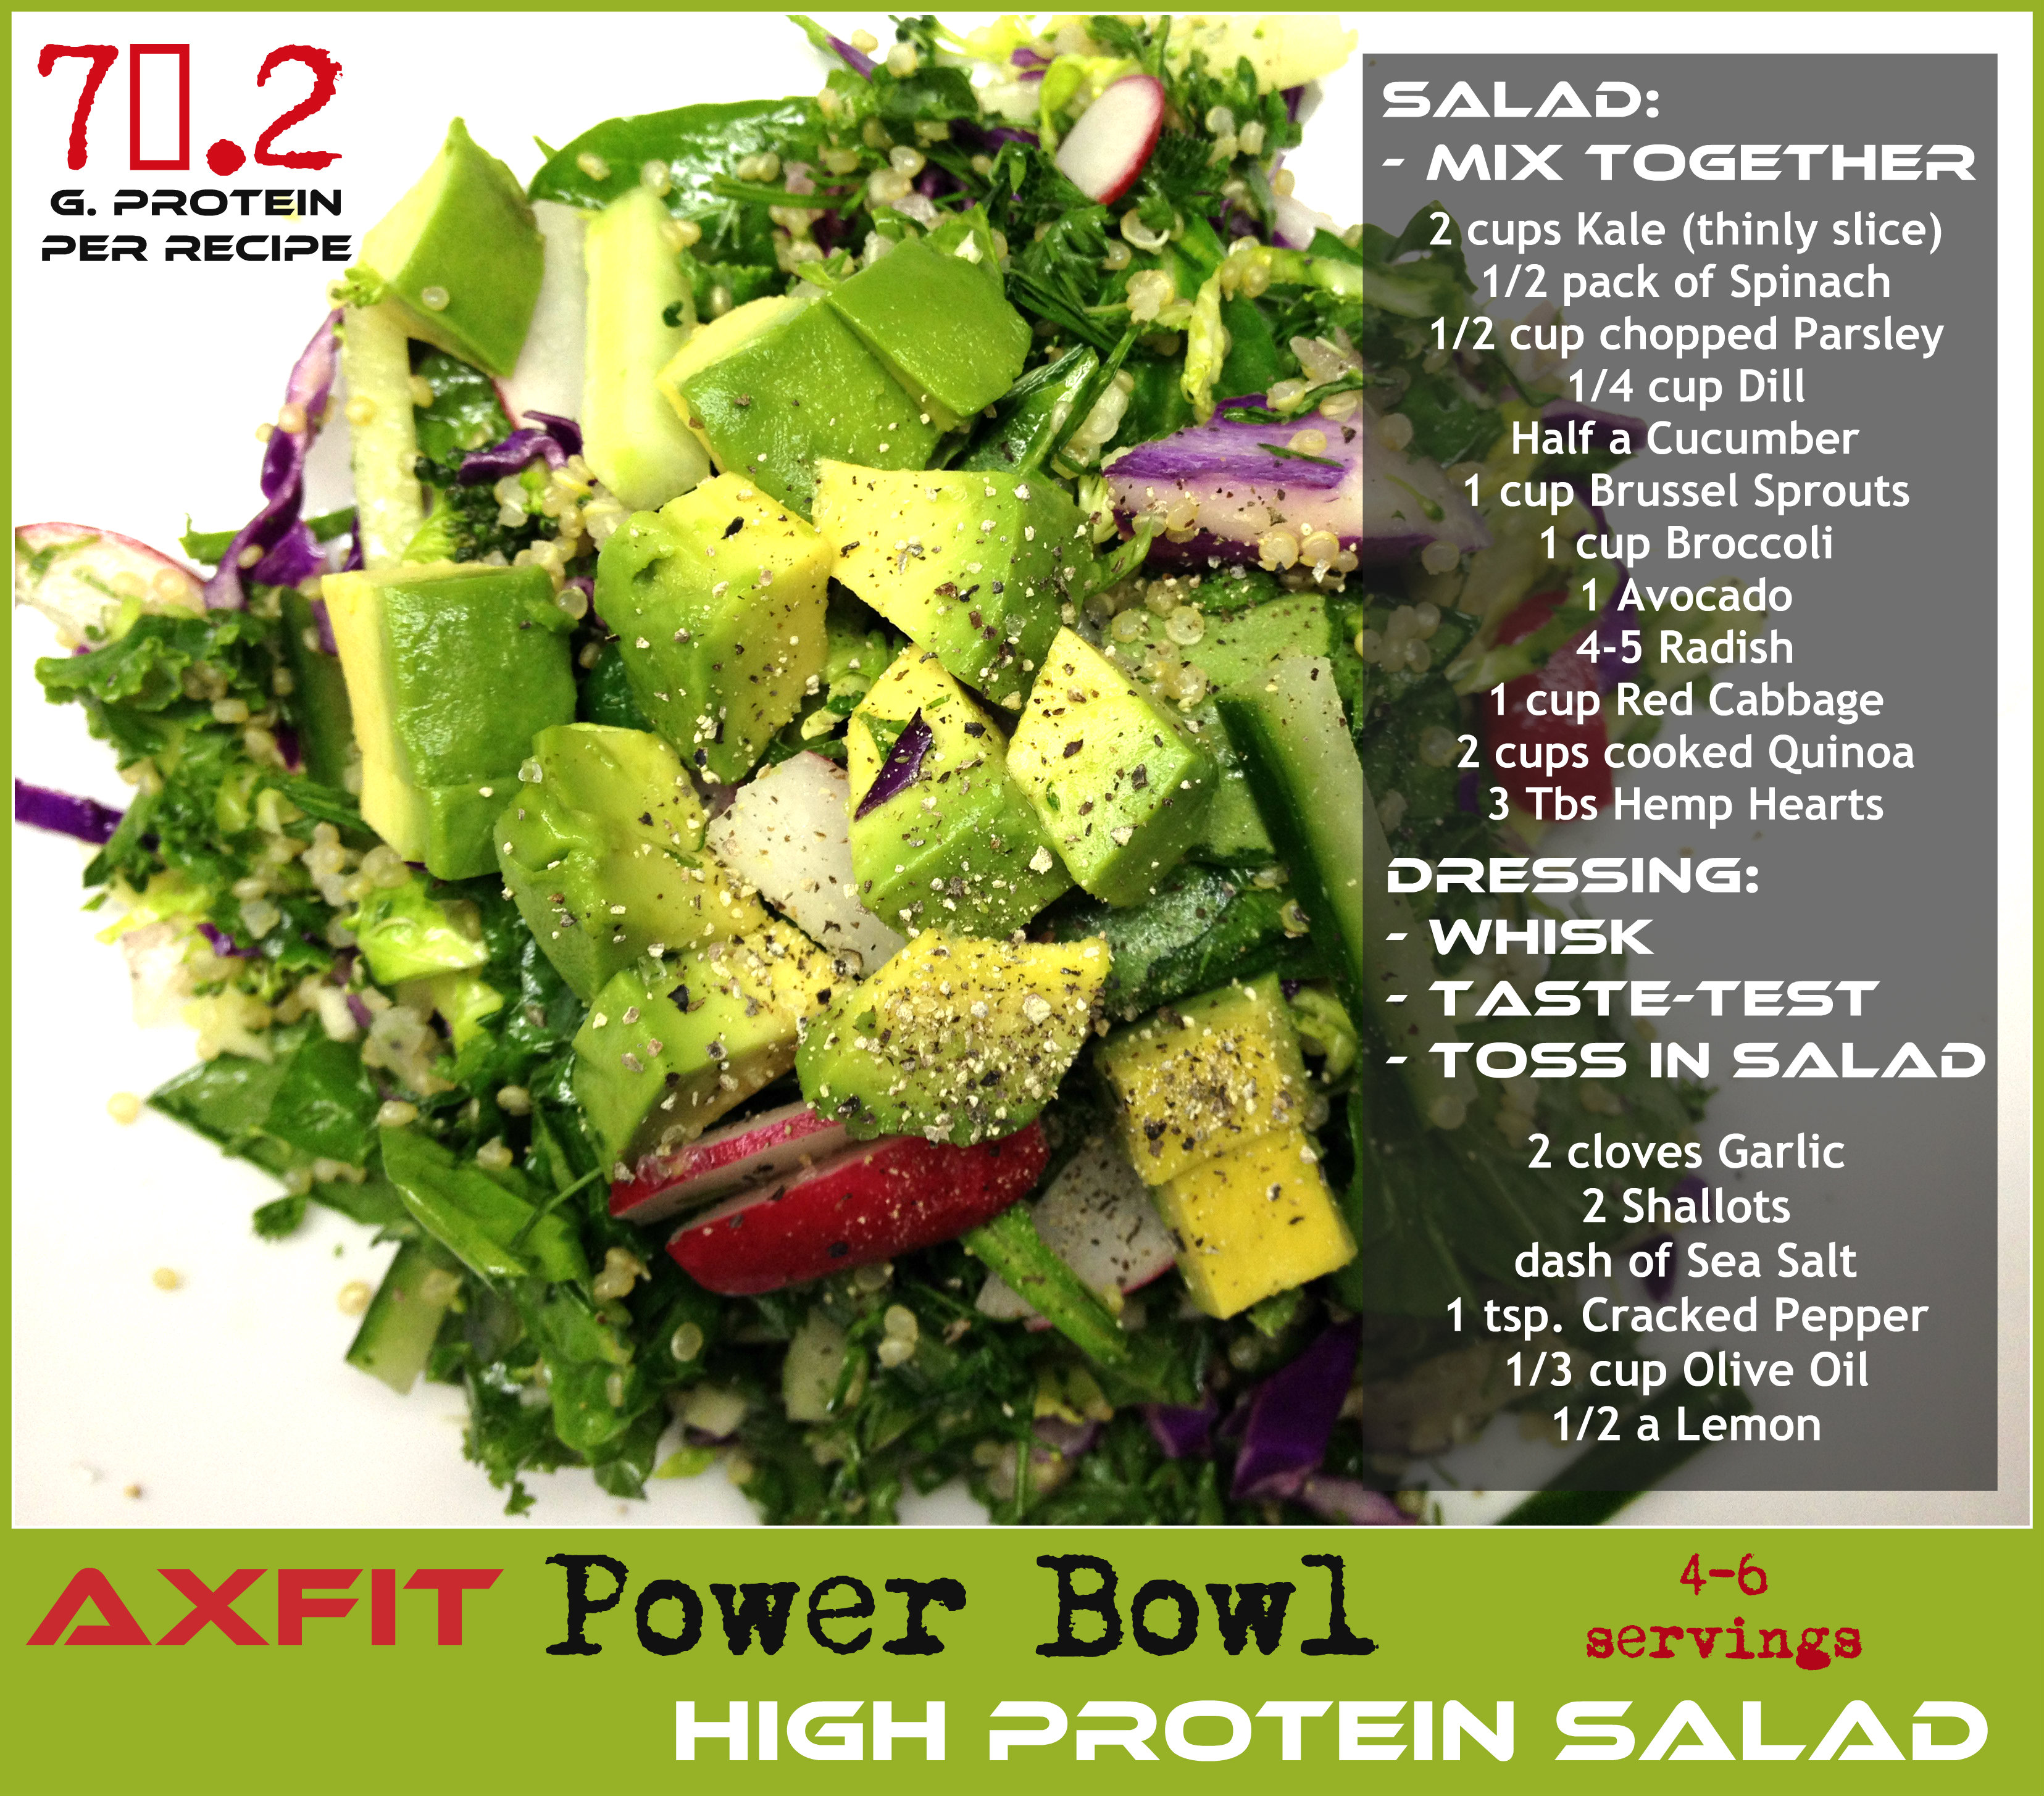 AXFIT Power Bowl - High Protein salad